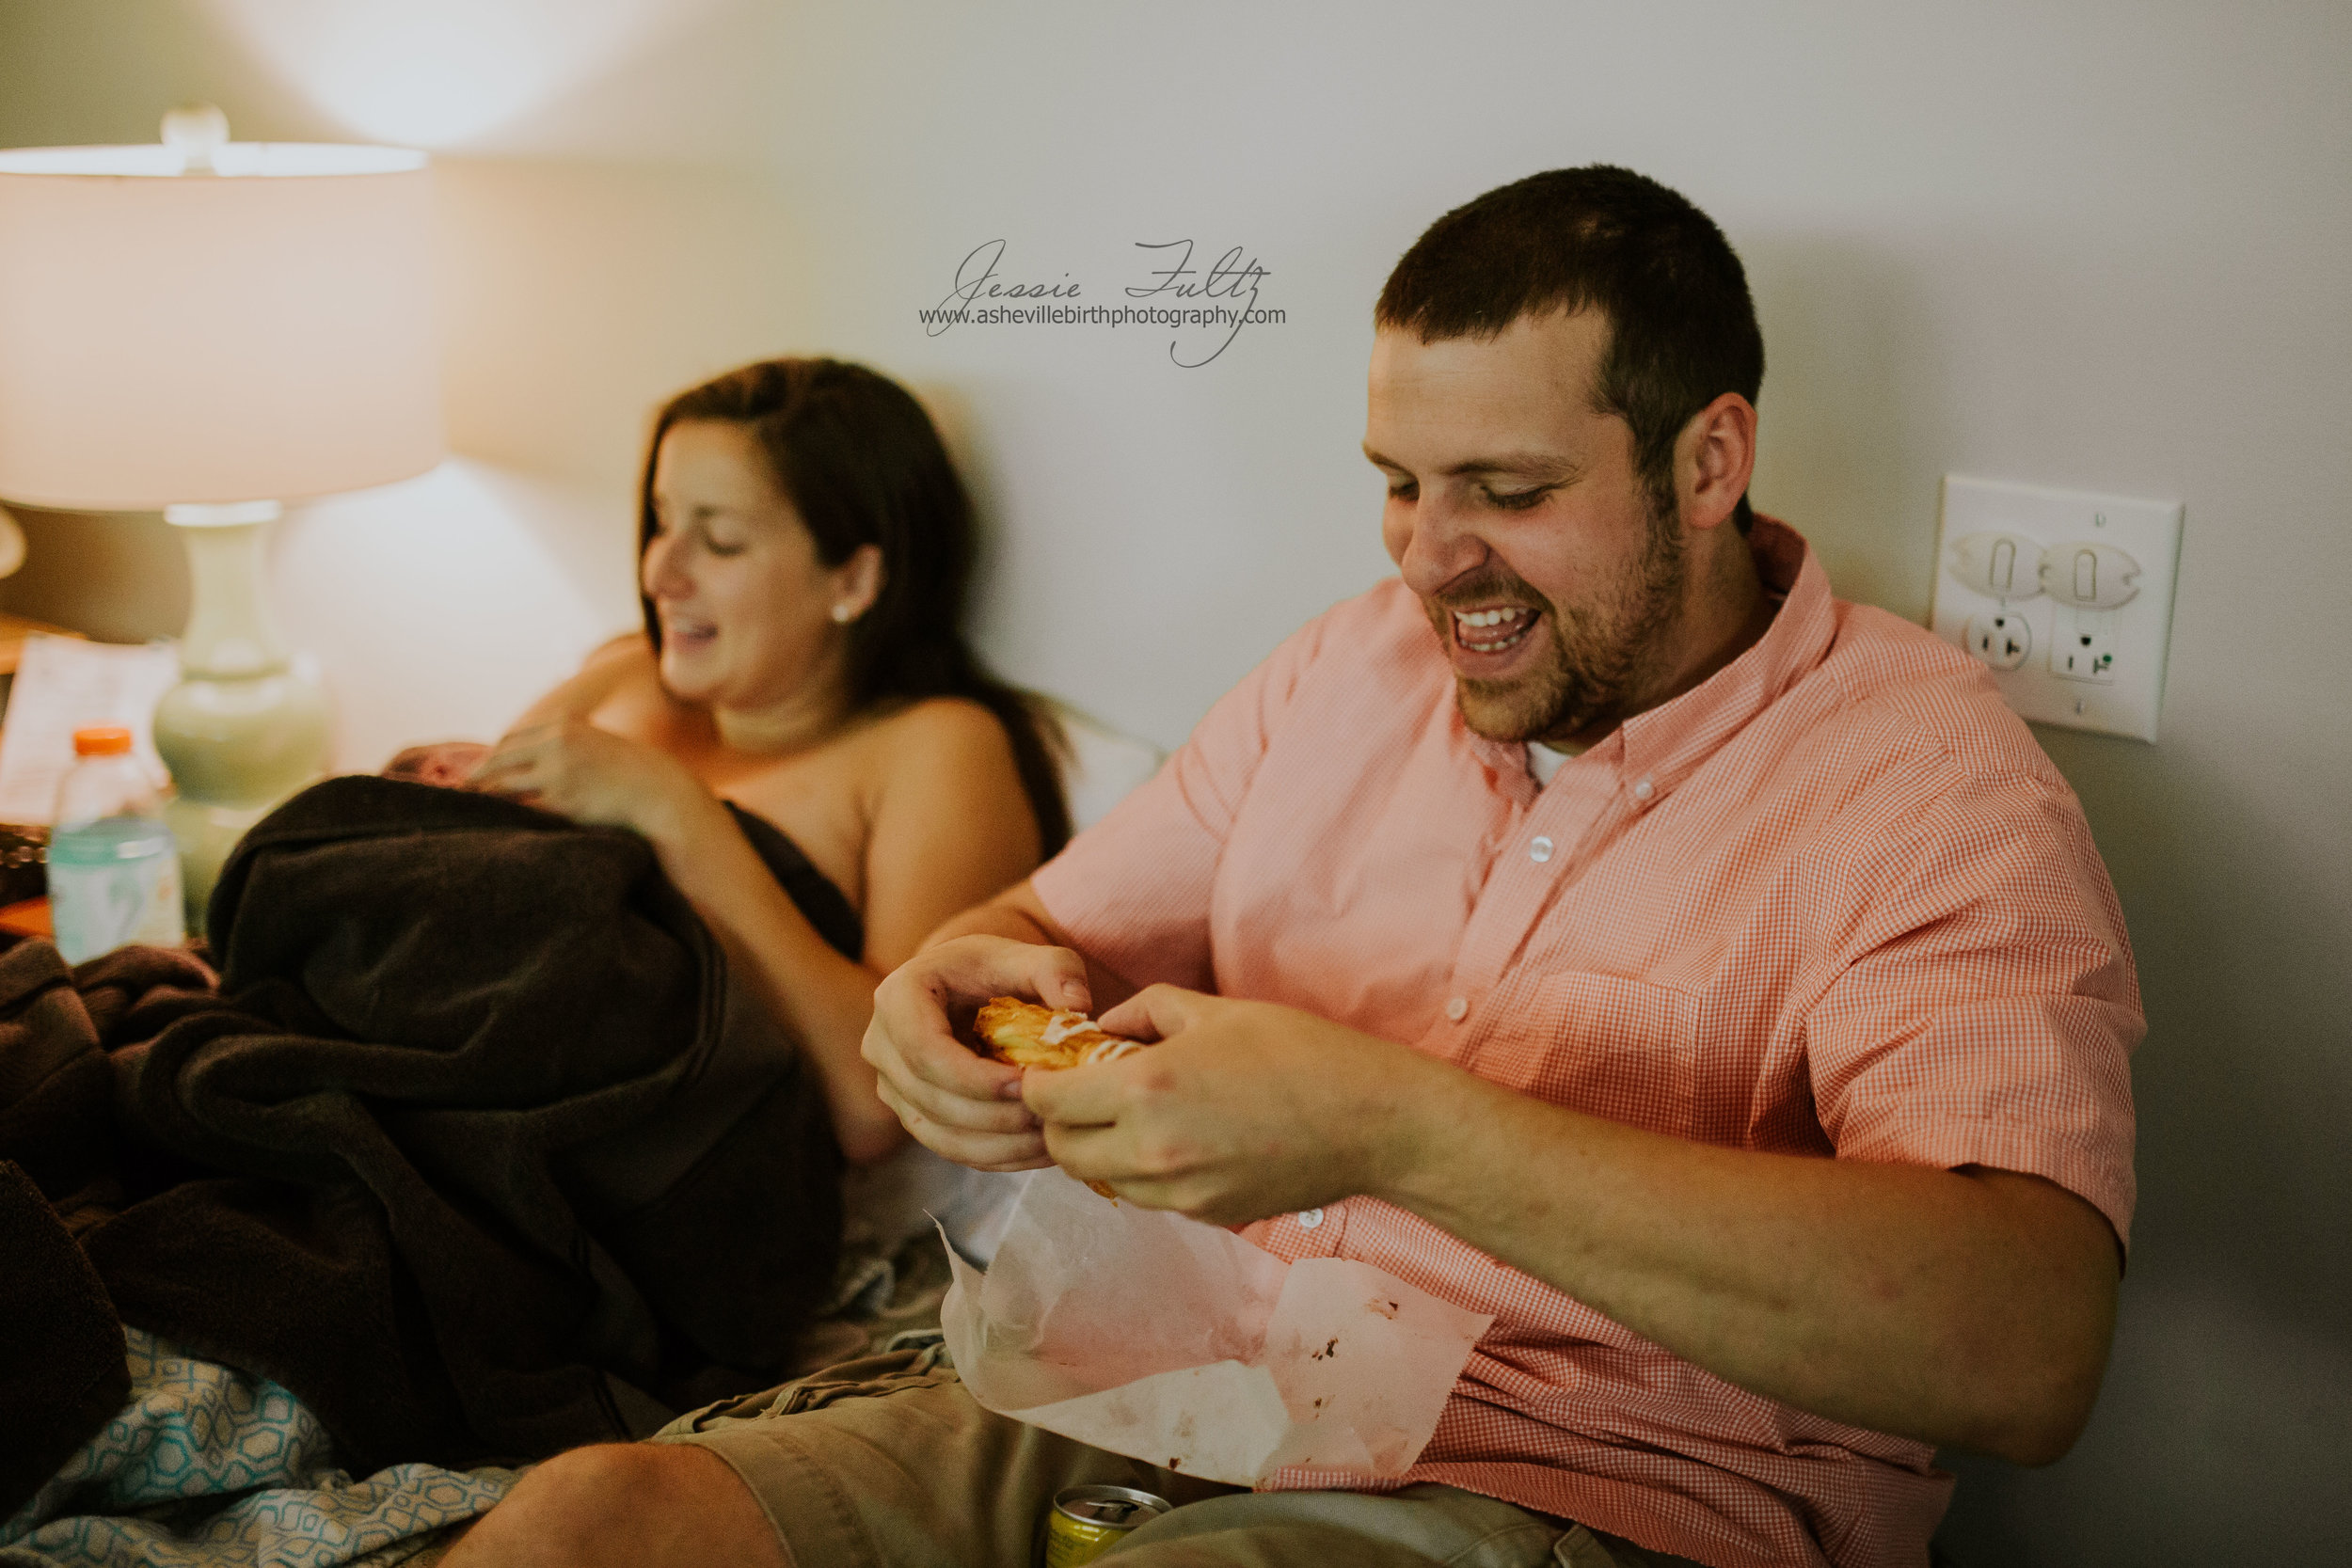 new dad grinning while breaking apart a pastry while his wife nurses their new baby in the background